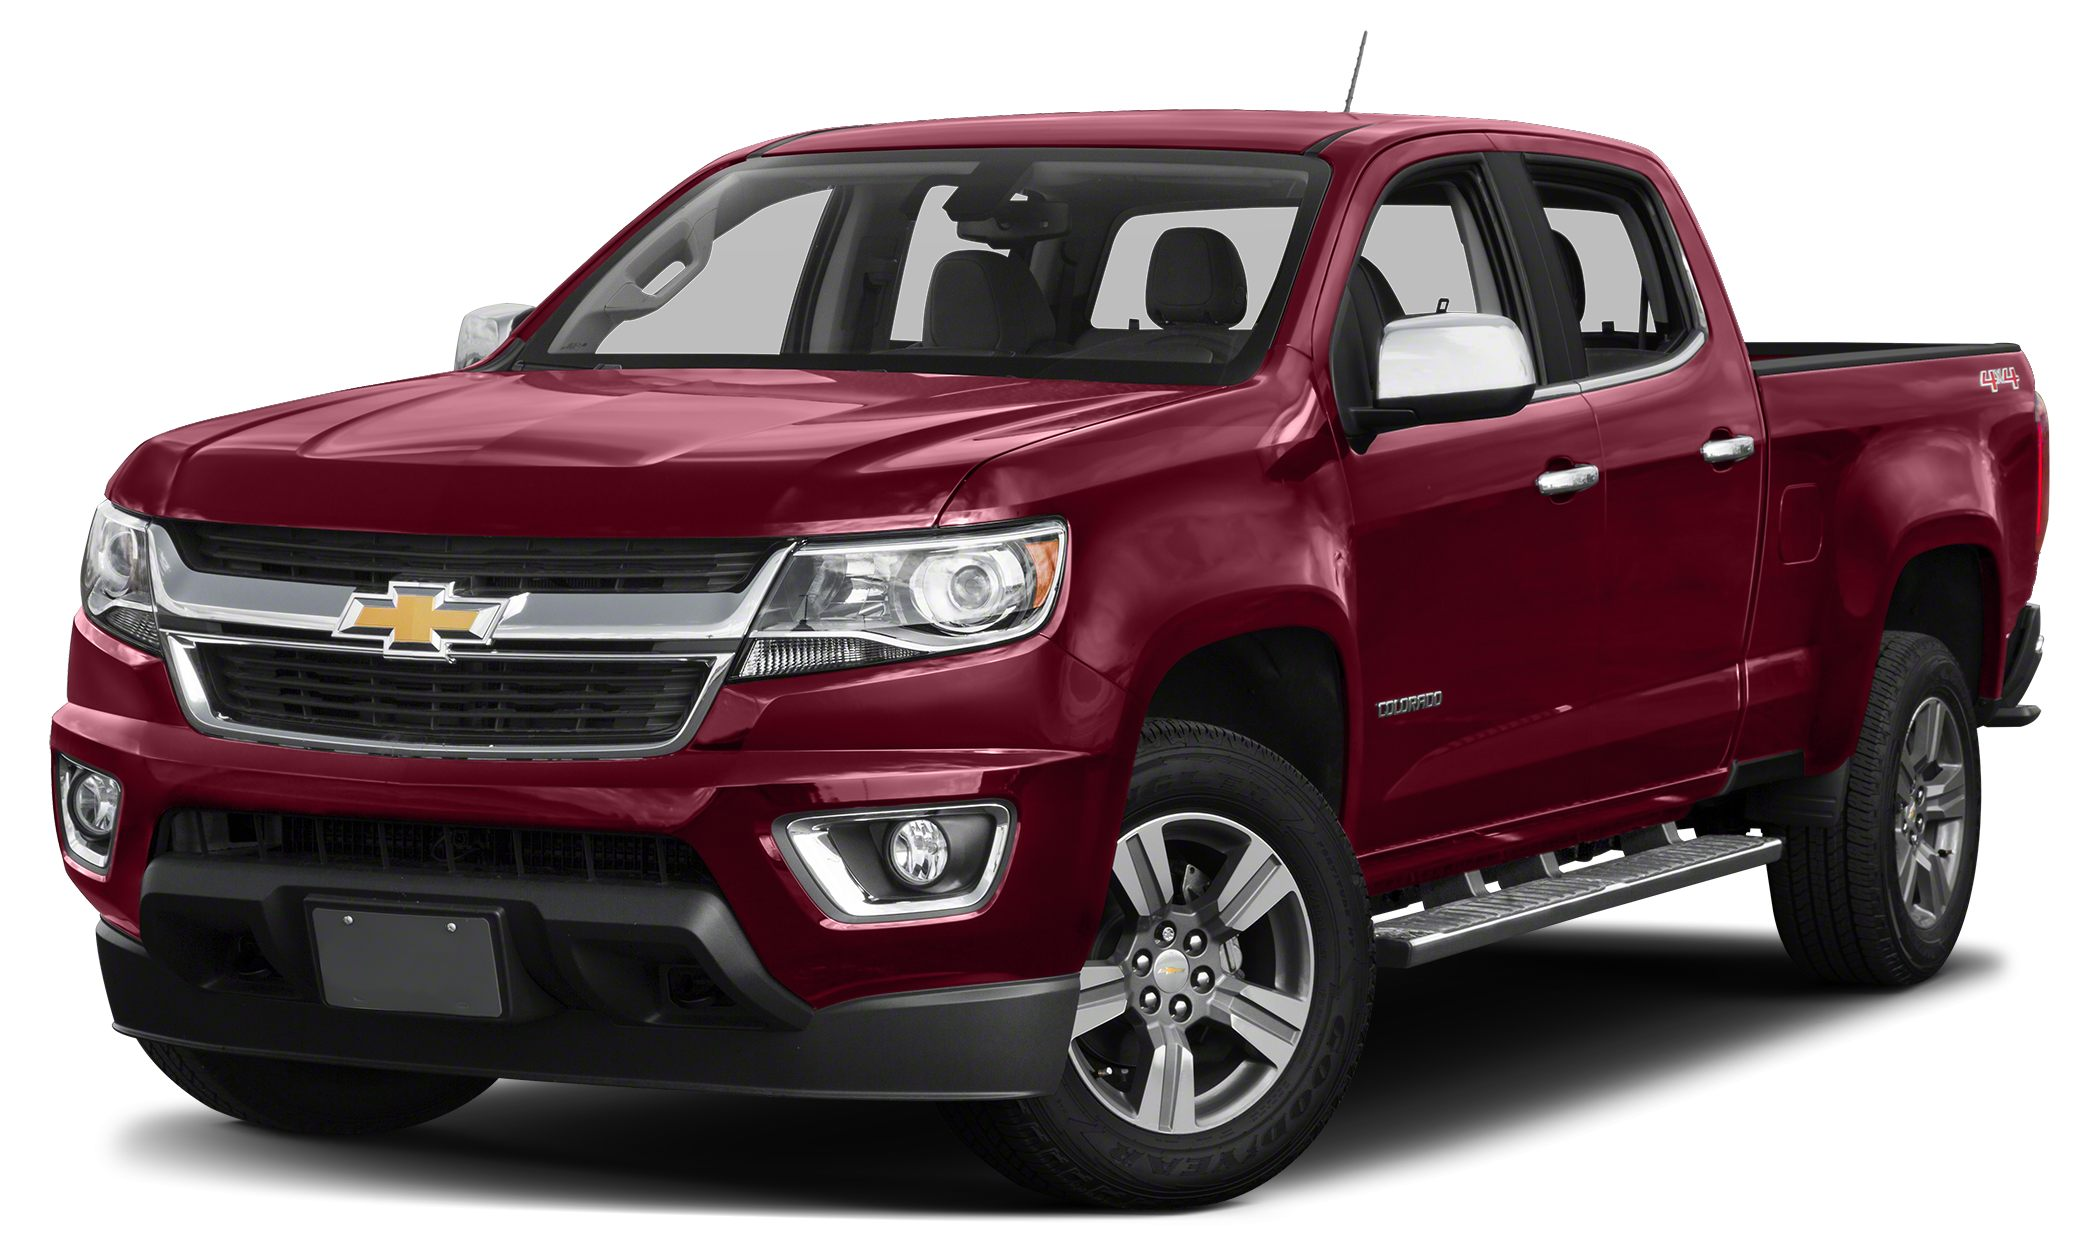 2015 Chevrolet Colorado LT Color Red Rock Metallic Stock 0SNQC4H VIN 1GCGSBE34F1271069